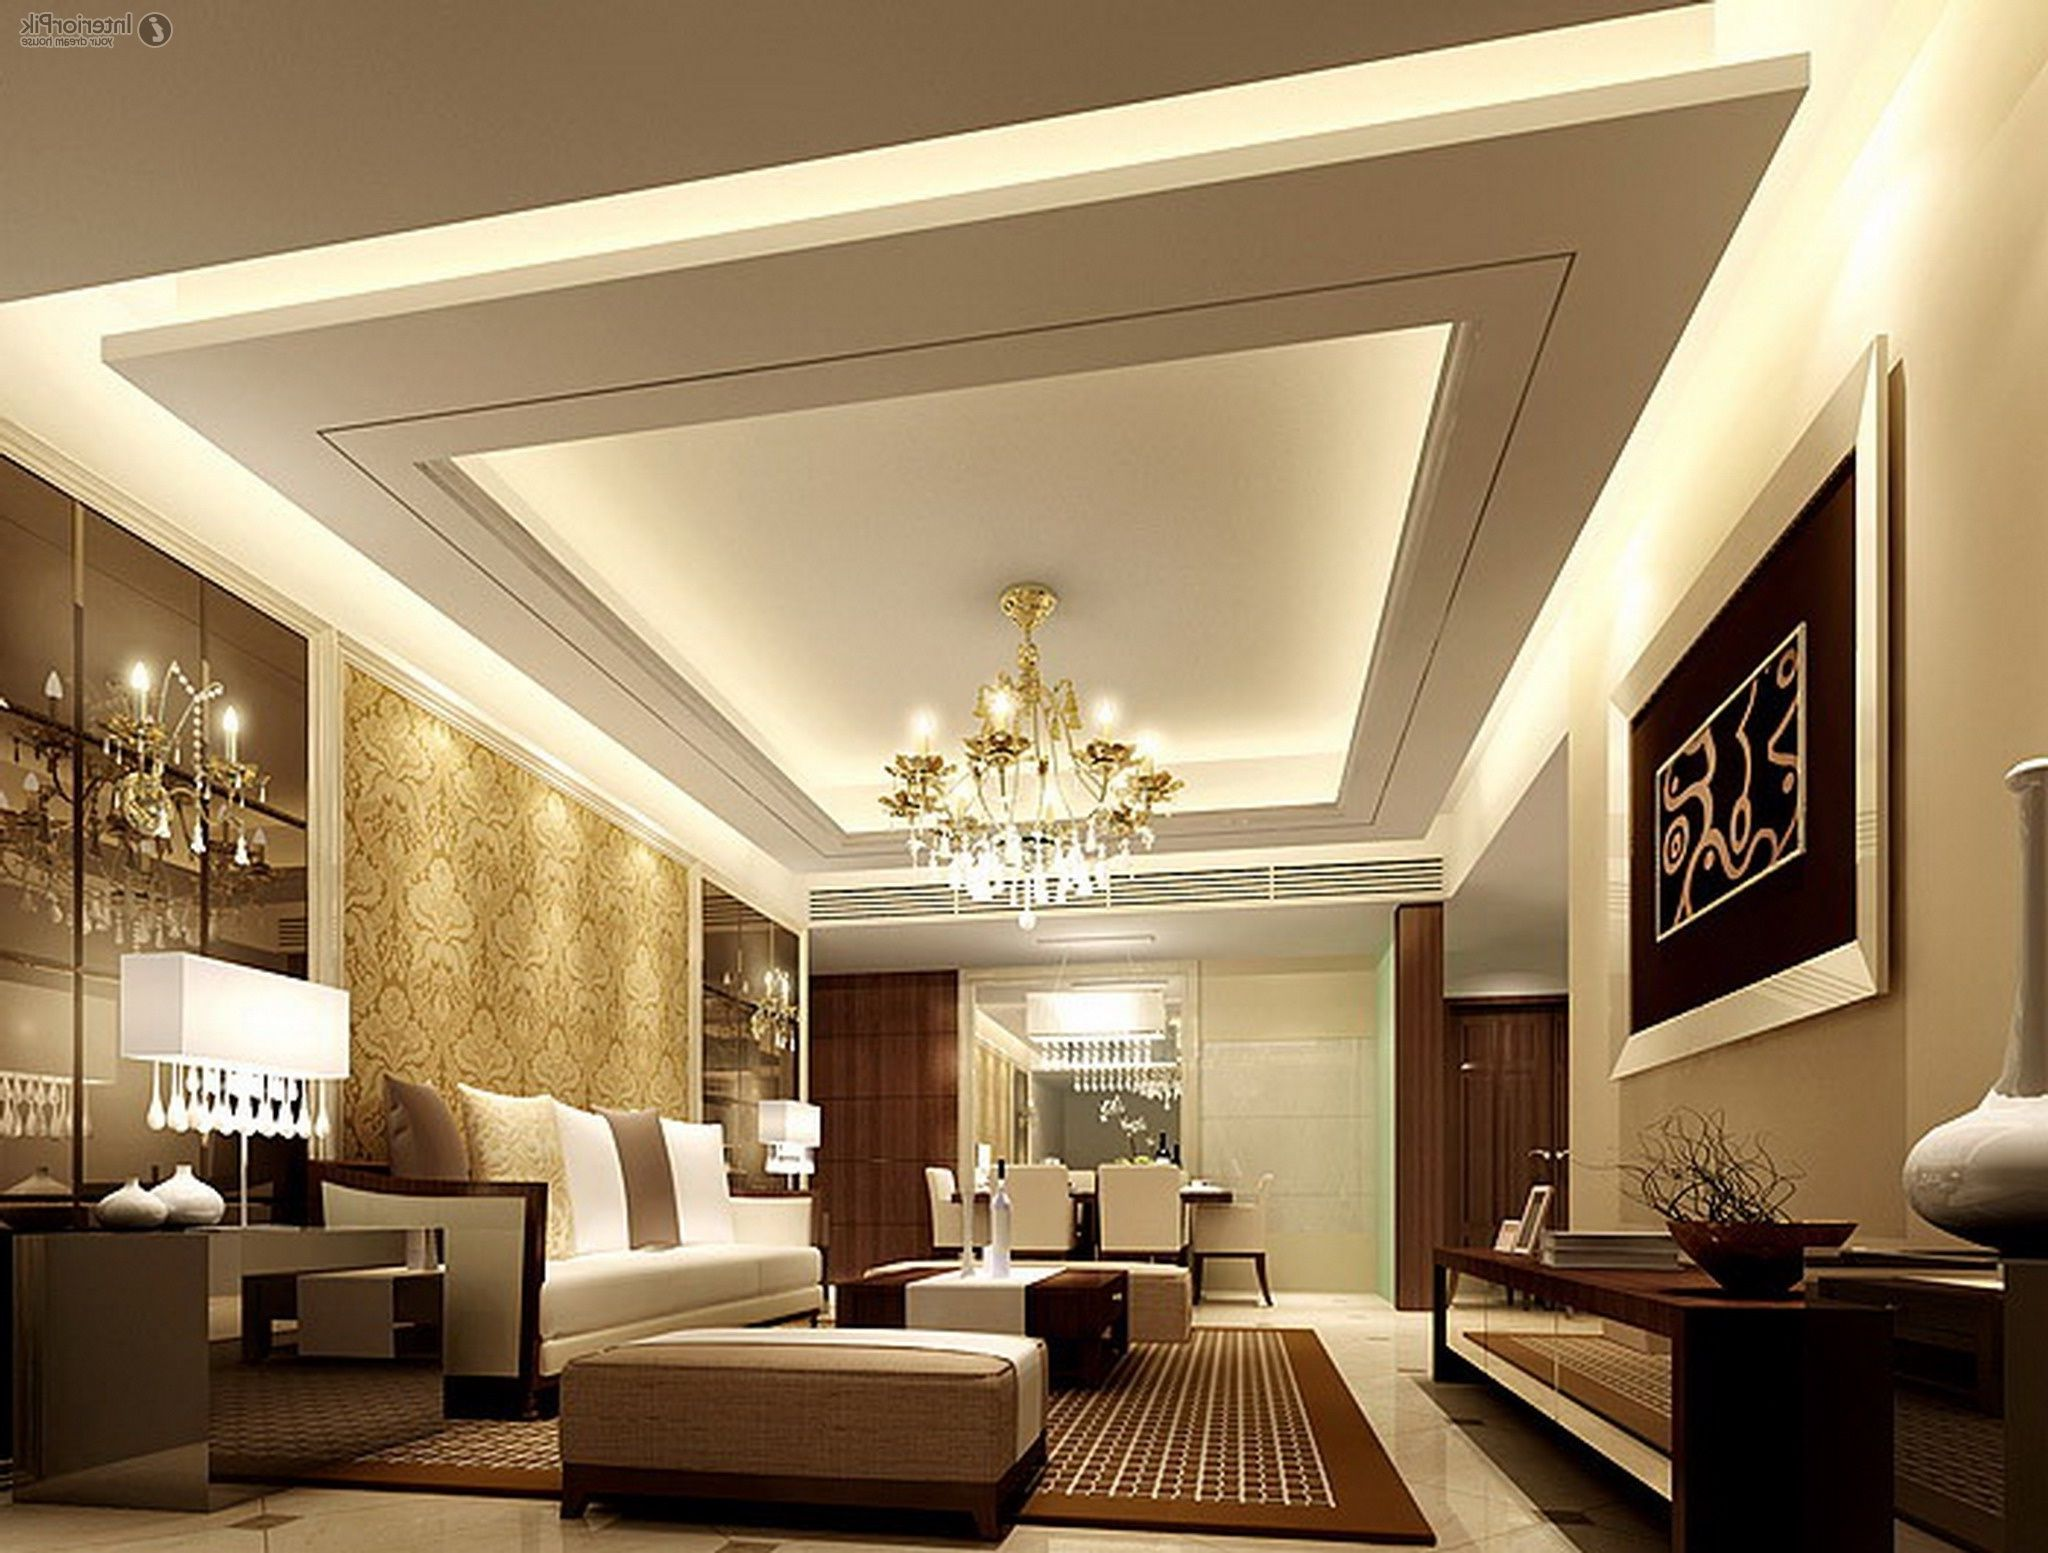 Amazing Living Room Decor Ceiling Design Living Room Bedroom False Ceiling Design Simple False Ceiling Design